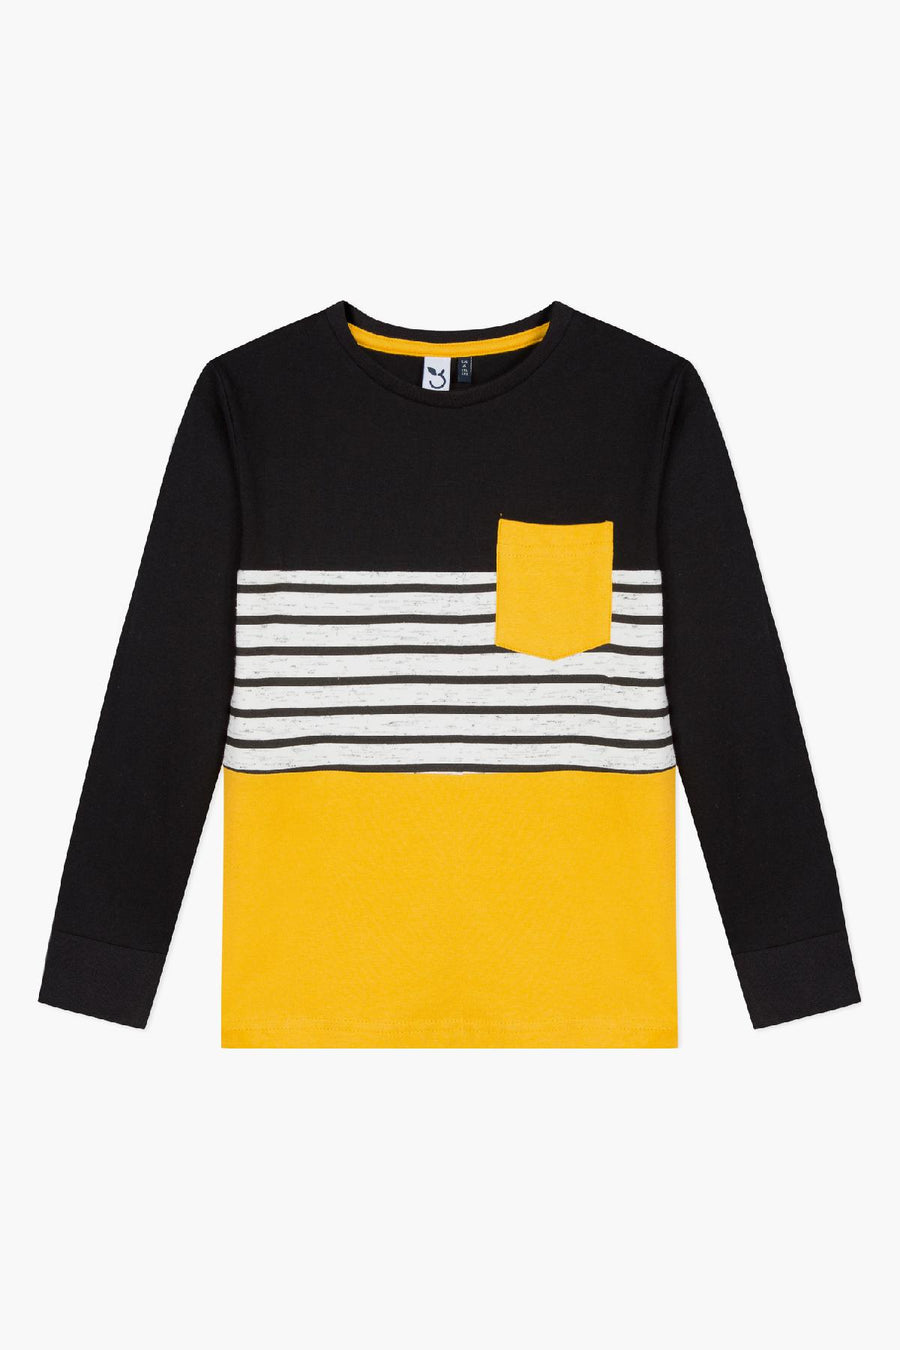 3pommes Striped Yellow Tee